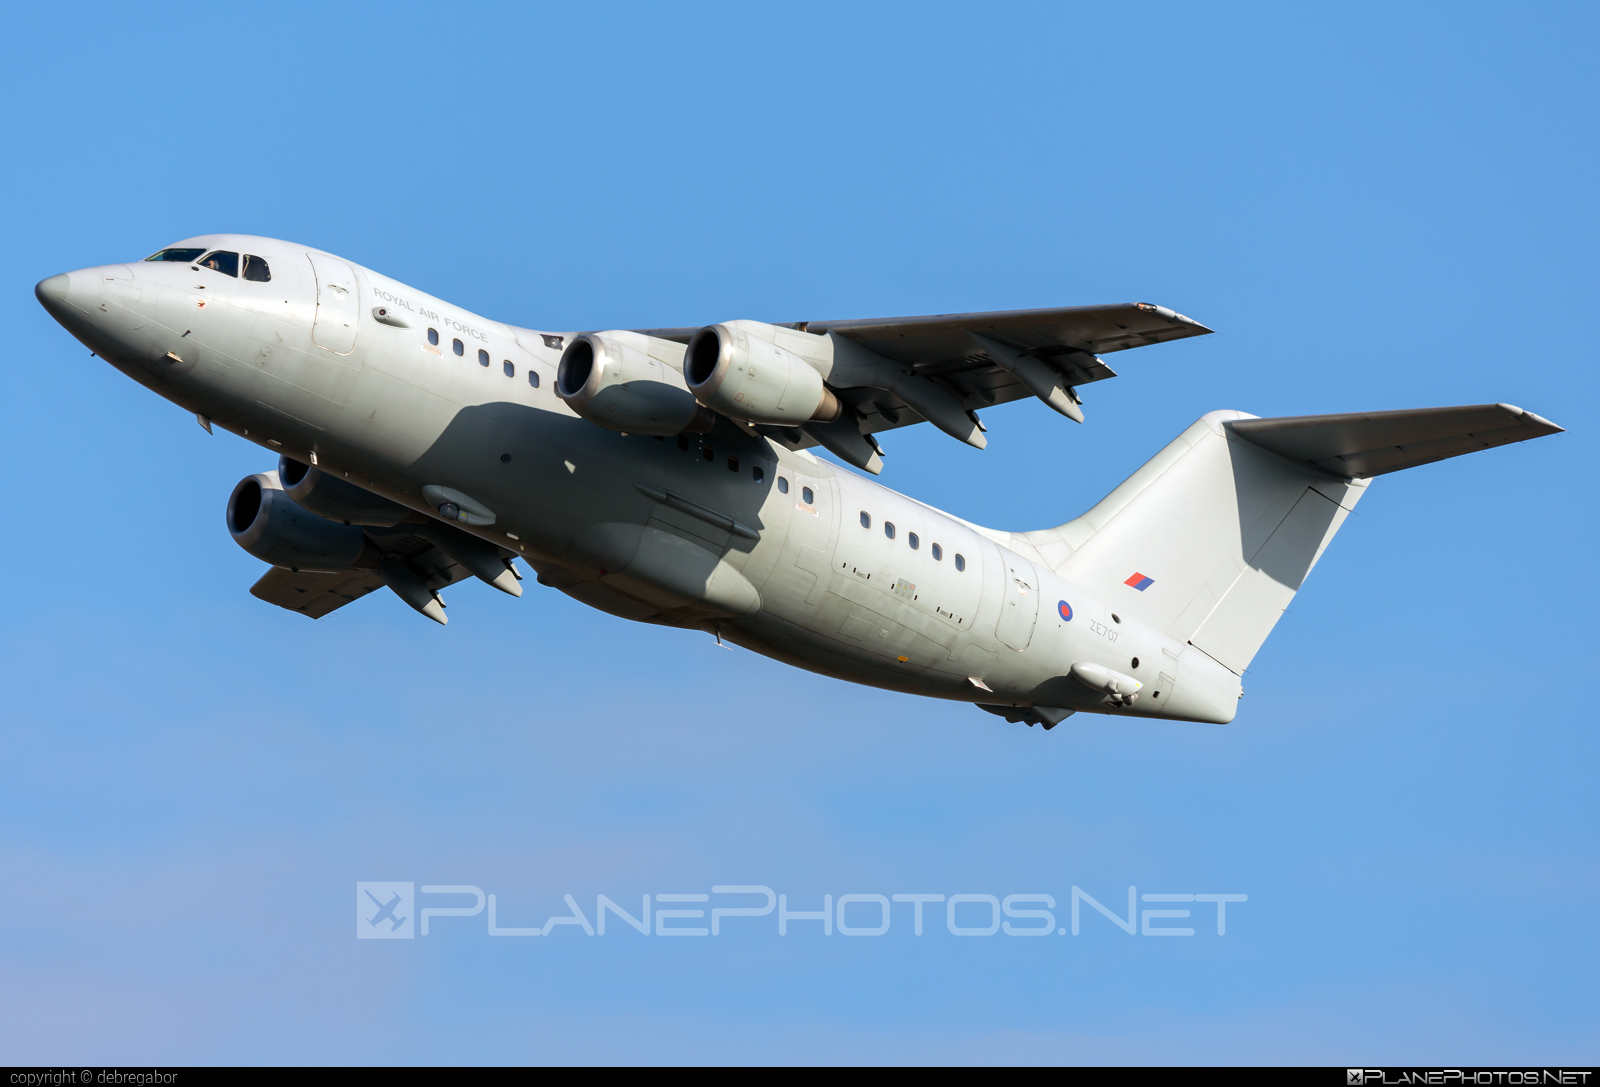 British Aerospace BAe 146-200 - ZE707 operated by Royal Air Force (RAF) #bae146 #bae146200 #britishaerospace #raf #royalairforce